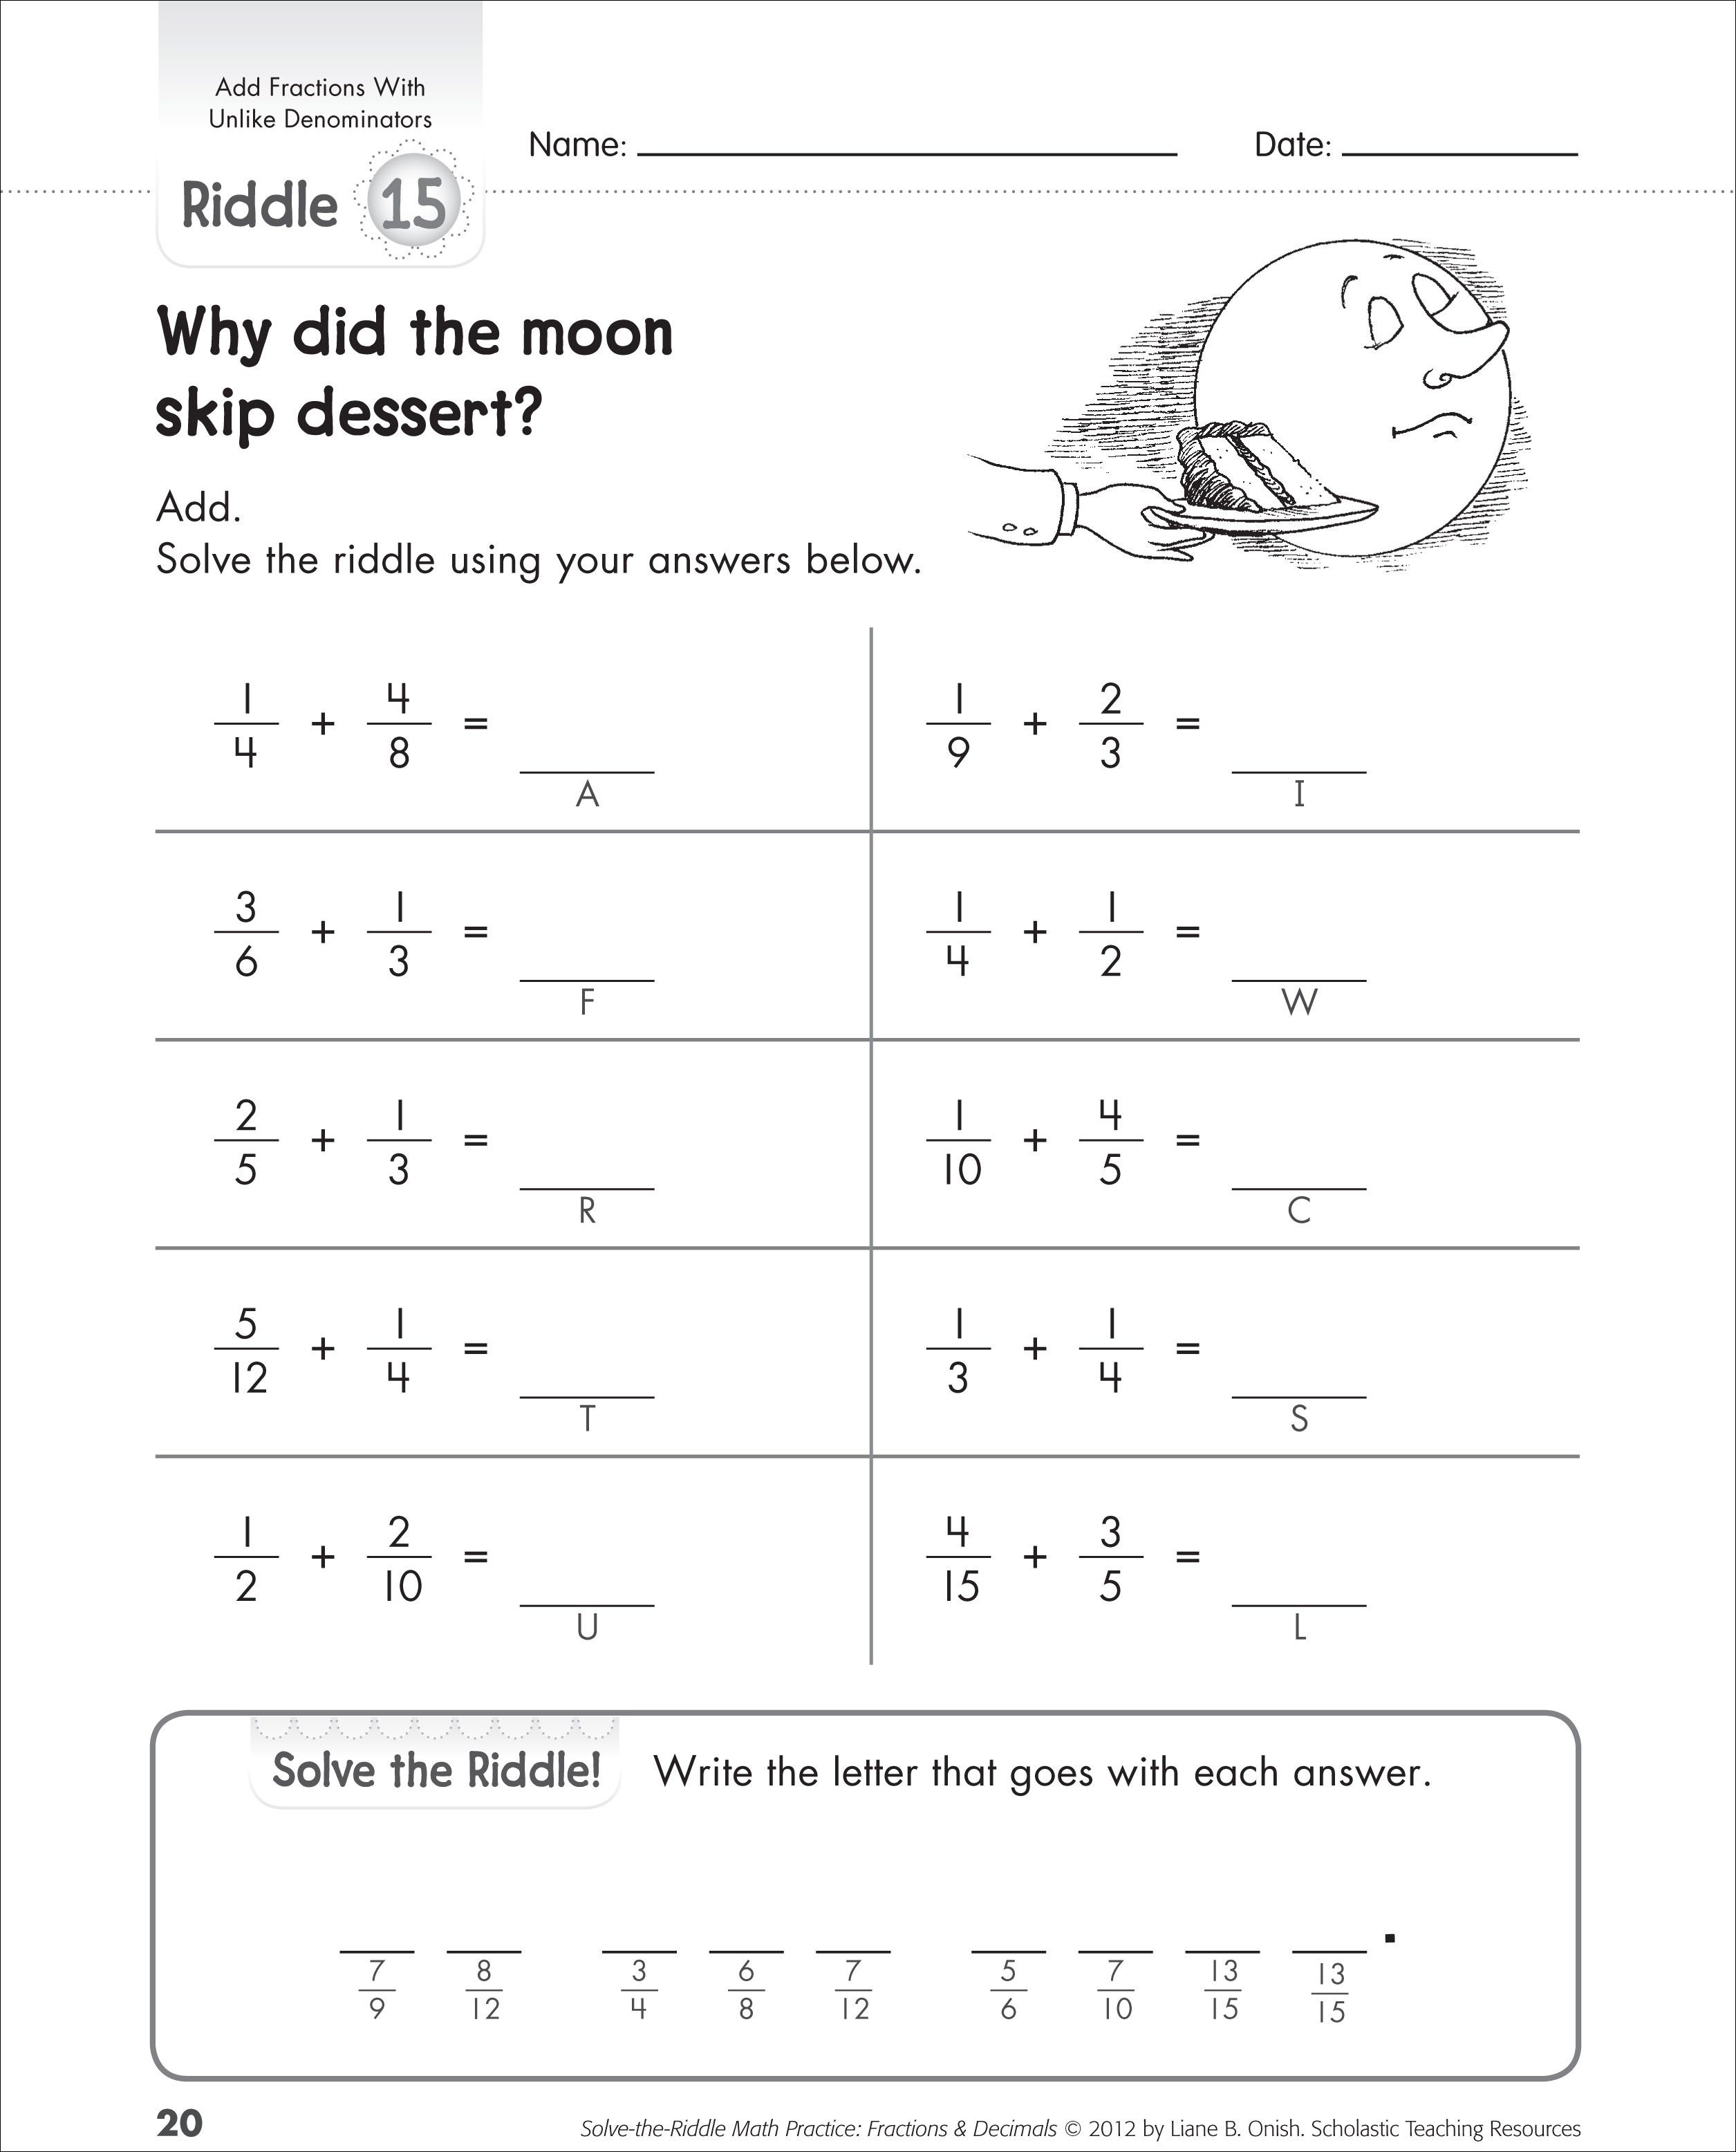 Worksheet Math Practice Fractions Worksheets Worksheet